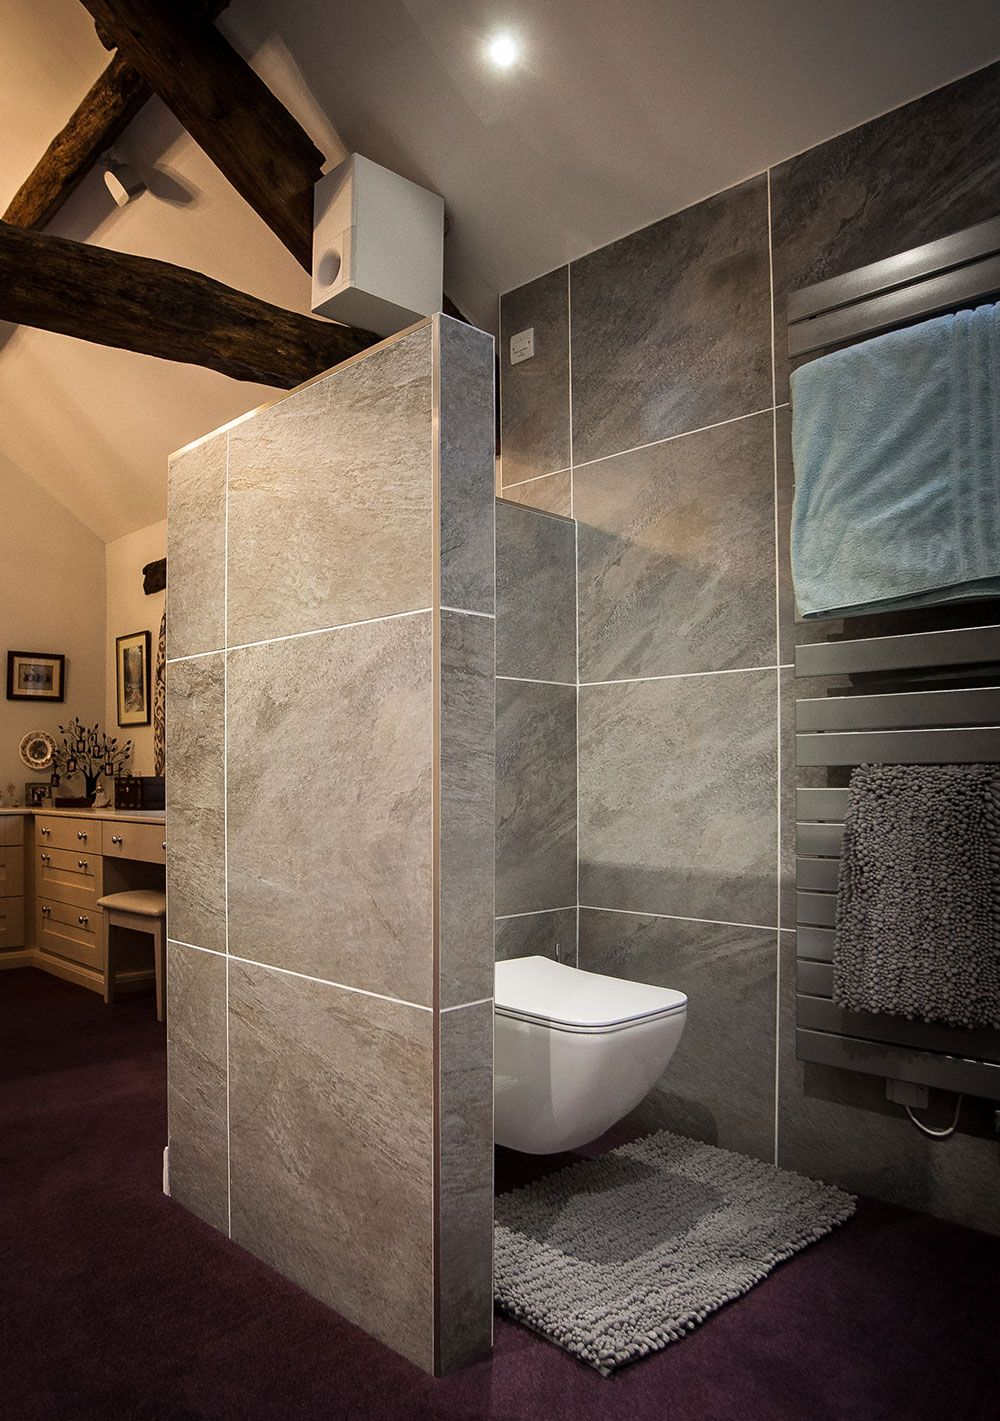 Open Plan Ensuite Toilet Is Hidden Behind Wall So As To Not Be Seen From The Bedroom But Is Still Open At The Top Which Bathroom Showrooms Bathroom Ensuite